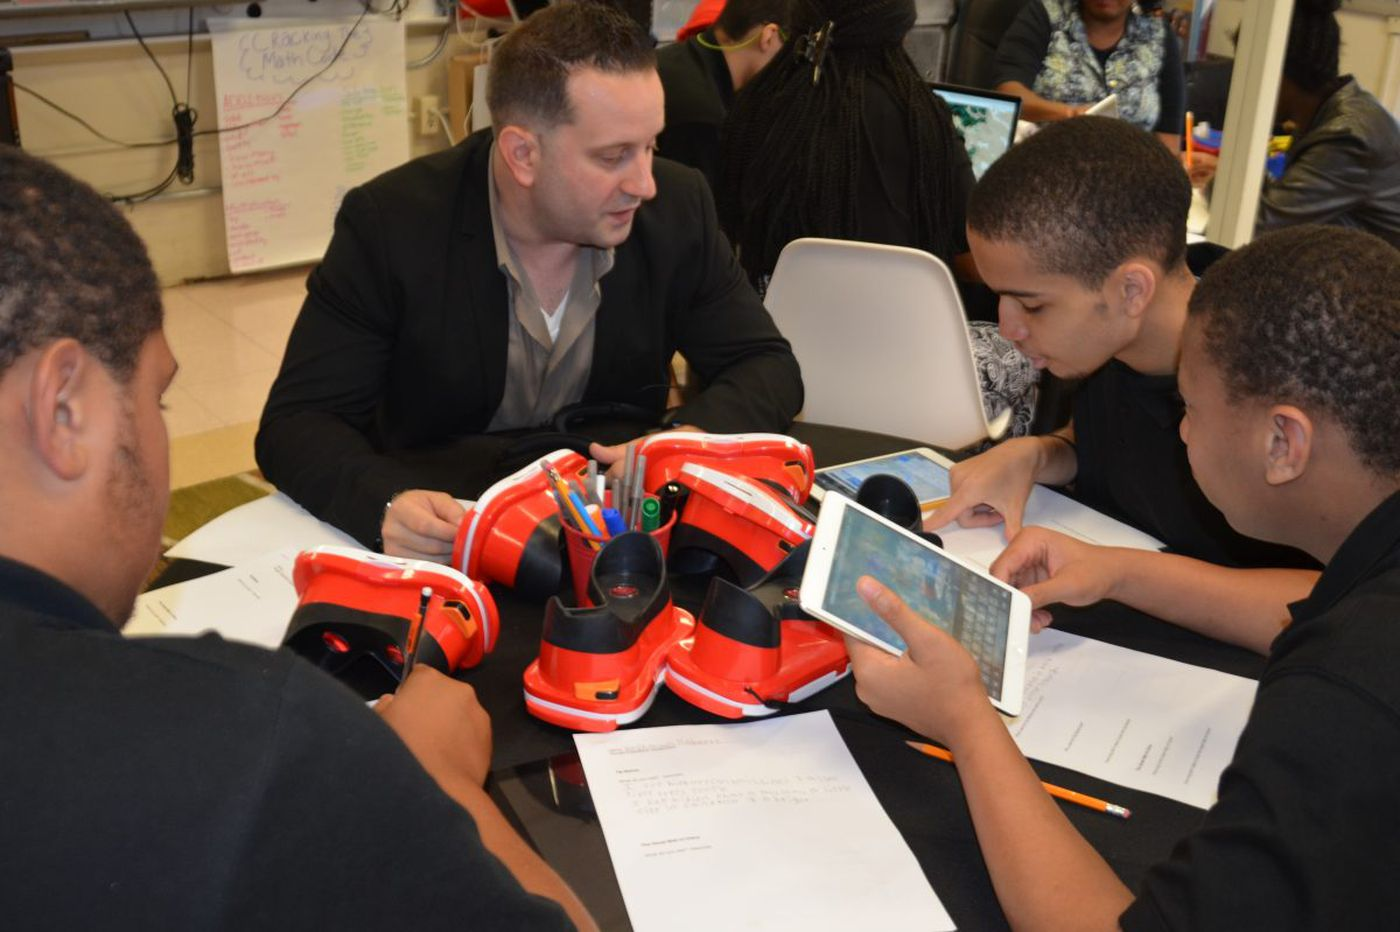 How did this teacher get 10 pairs of VR glasses, a 3D printer and a hot dog steamer for his classroom? Crowdfunding.